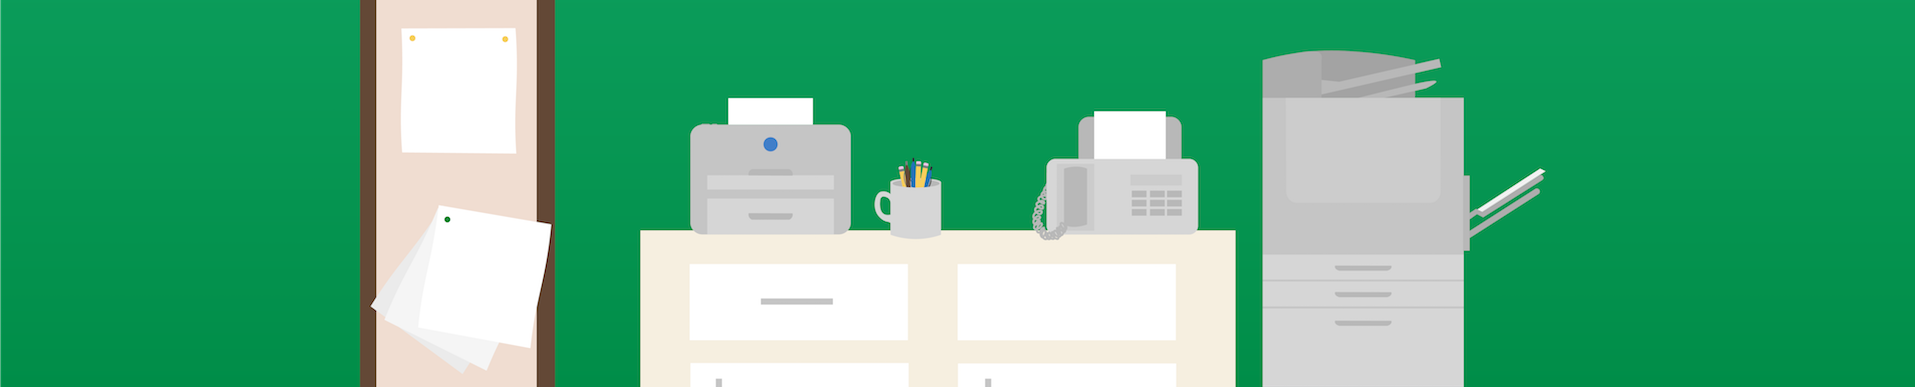 How to find the most energy-efficient printers, copiers and fax machines for small businesses